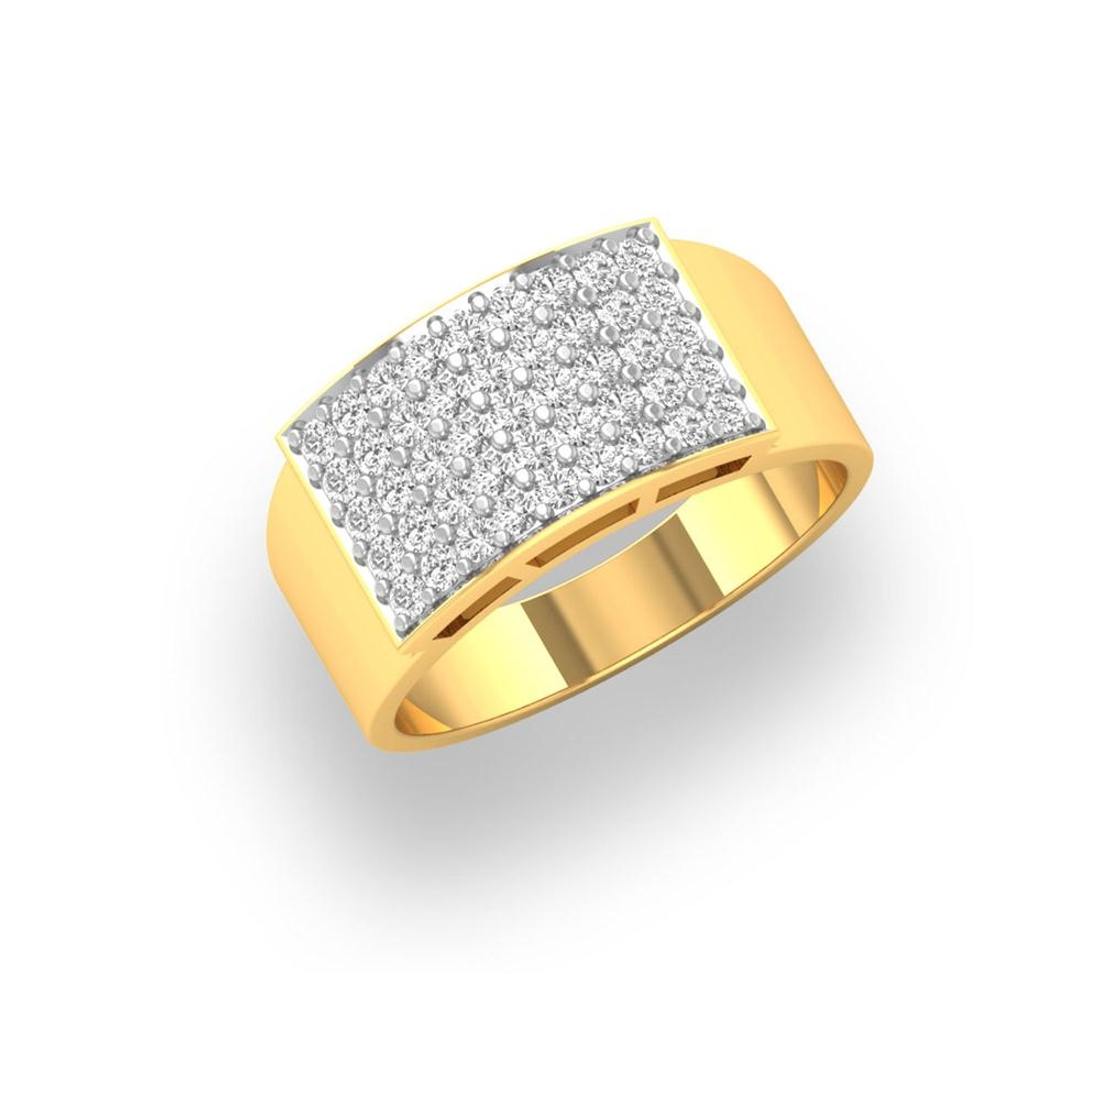 Charu Jewels Diamond Ring Made with 7.45 Gms 18 Kt Yellow Gold And 0.83 Carat Diamonds